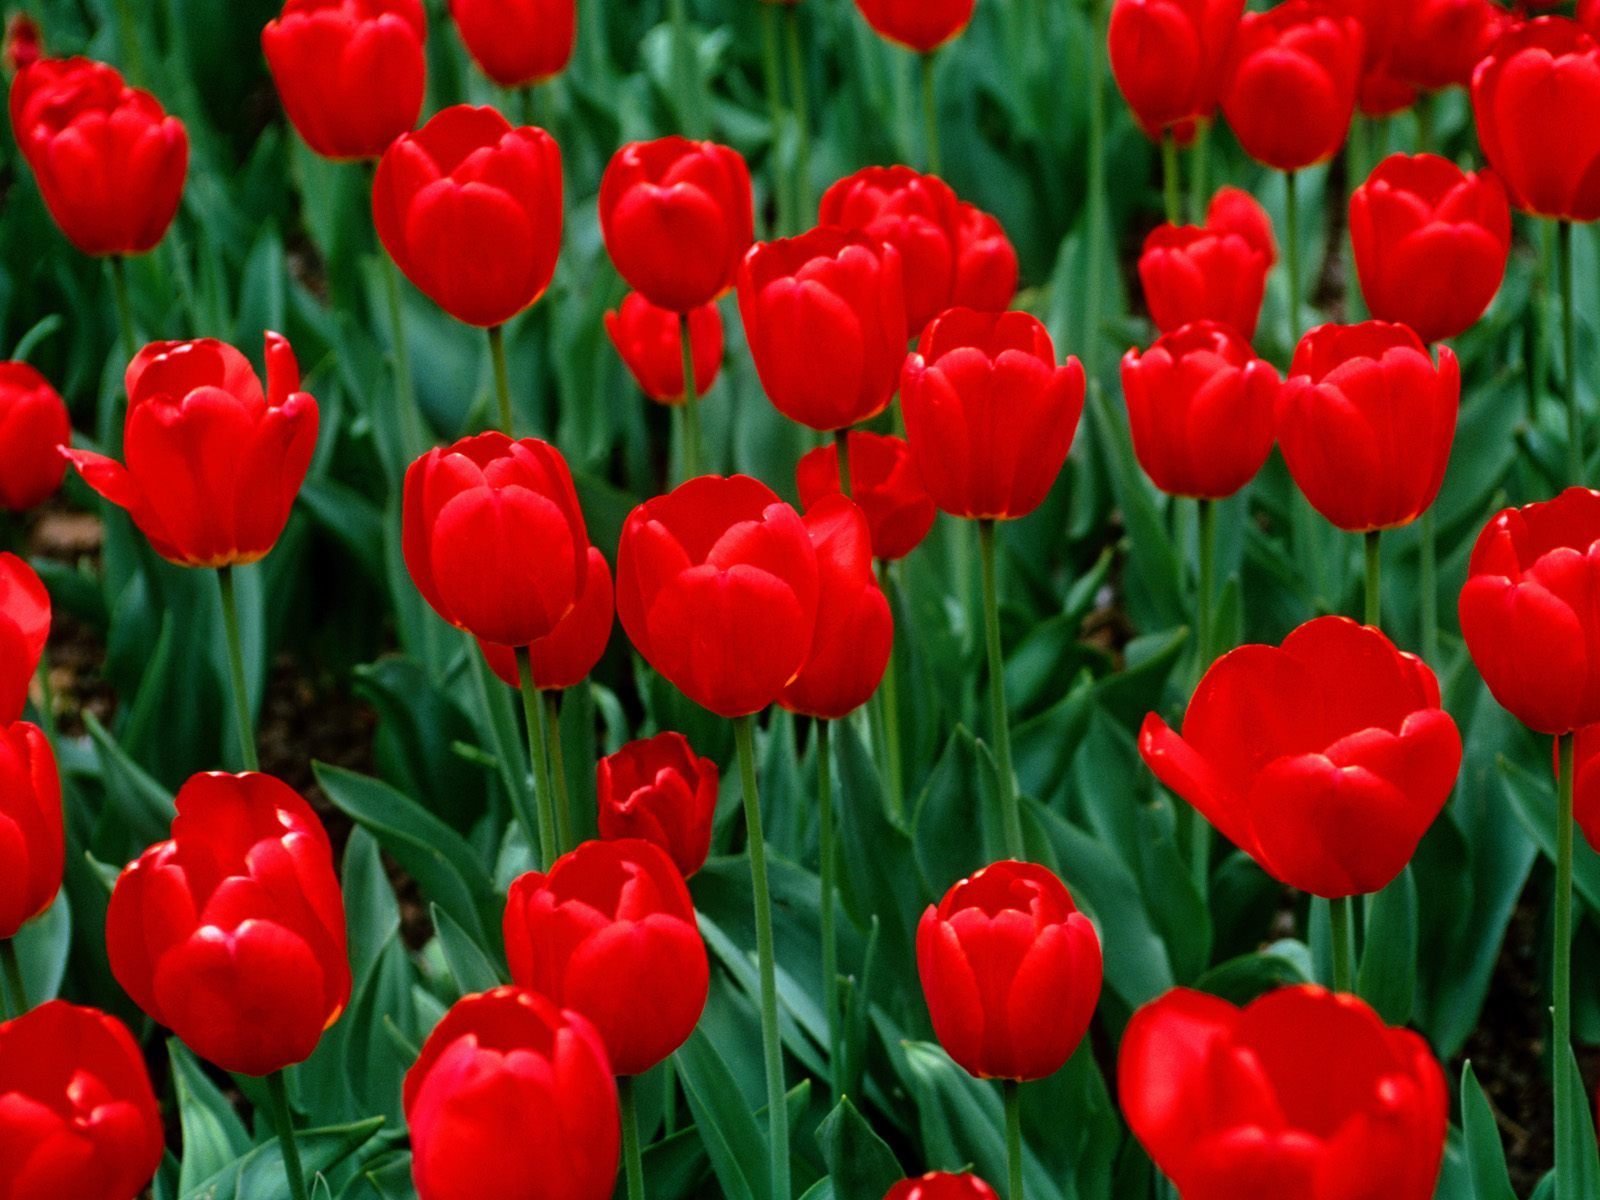 red tulips flower wallpaper hd 2017 is high definition wallpaper you can make this wallpaper for your desktop background android or iphone plus